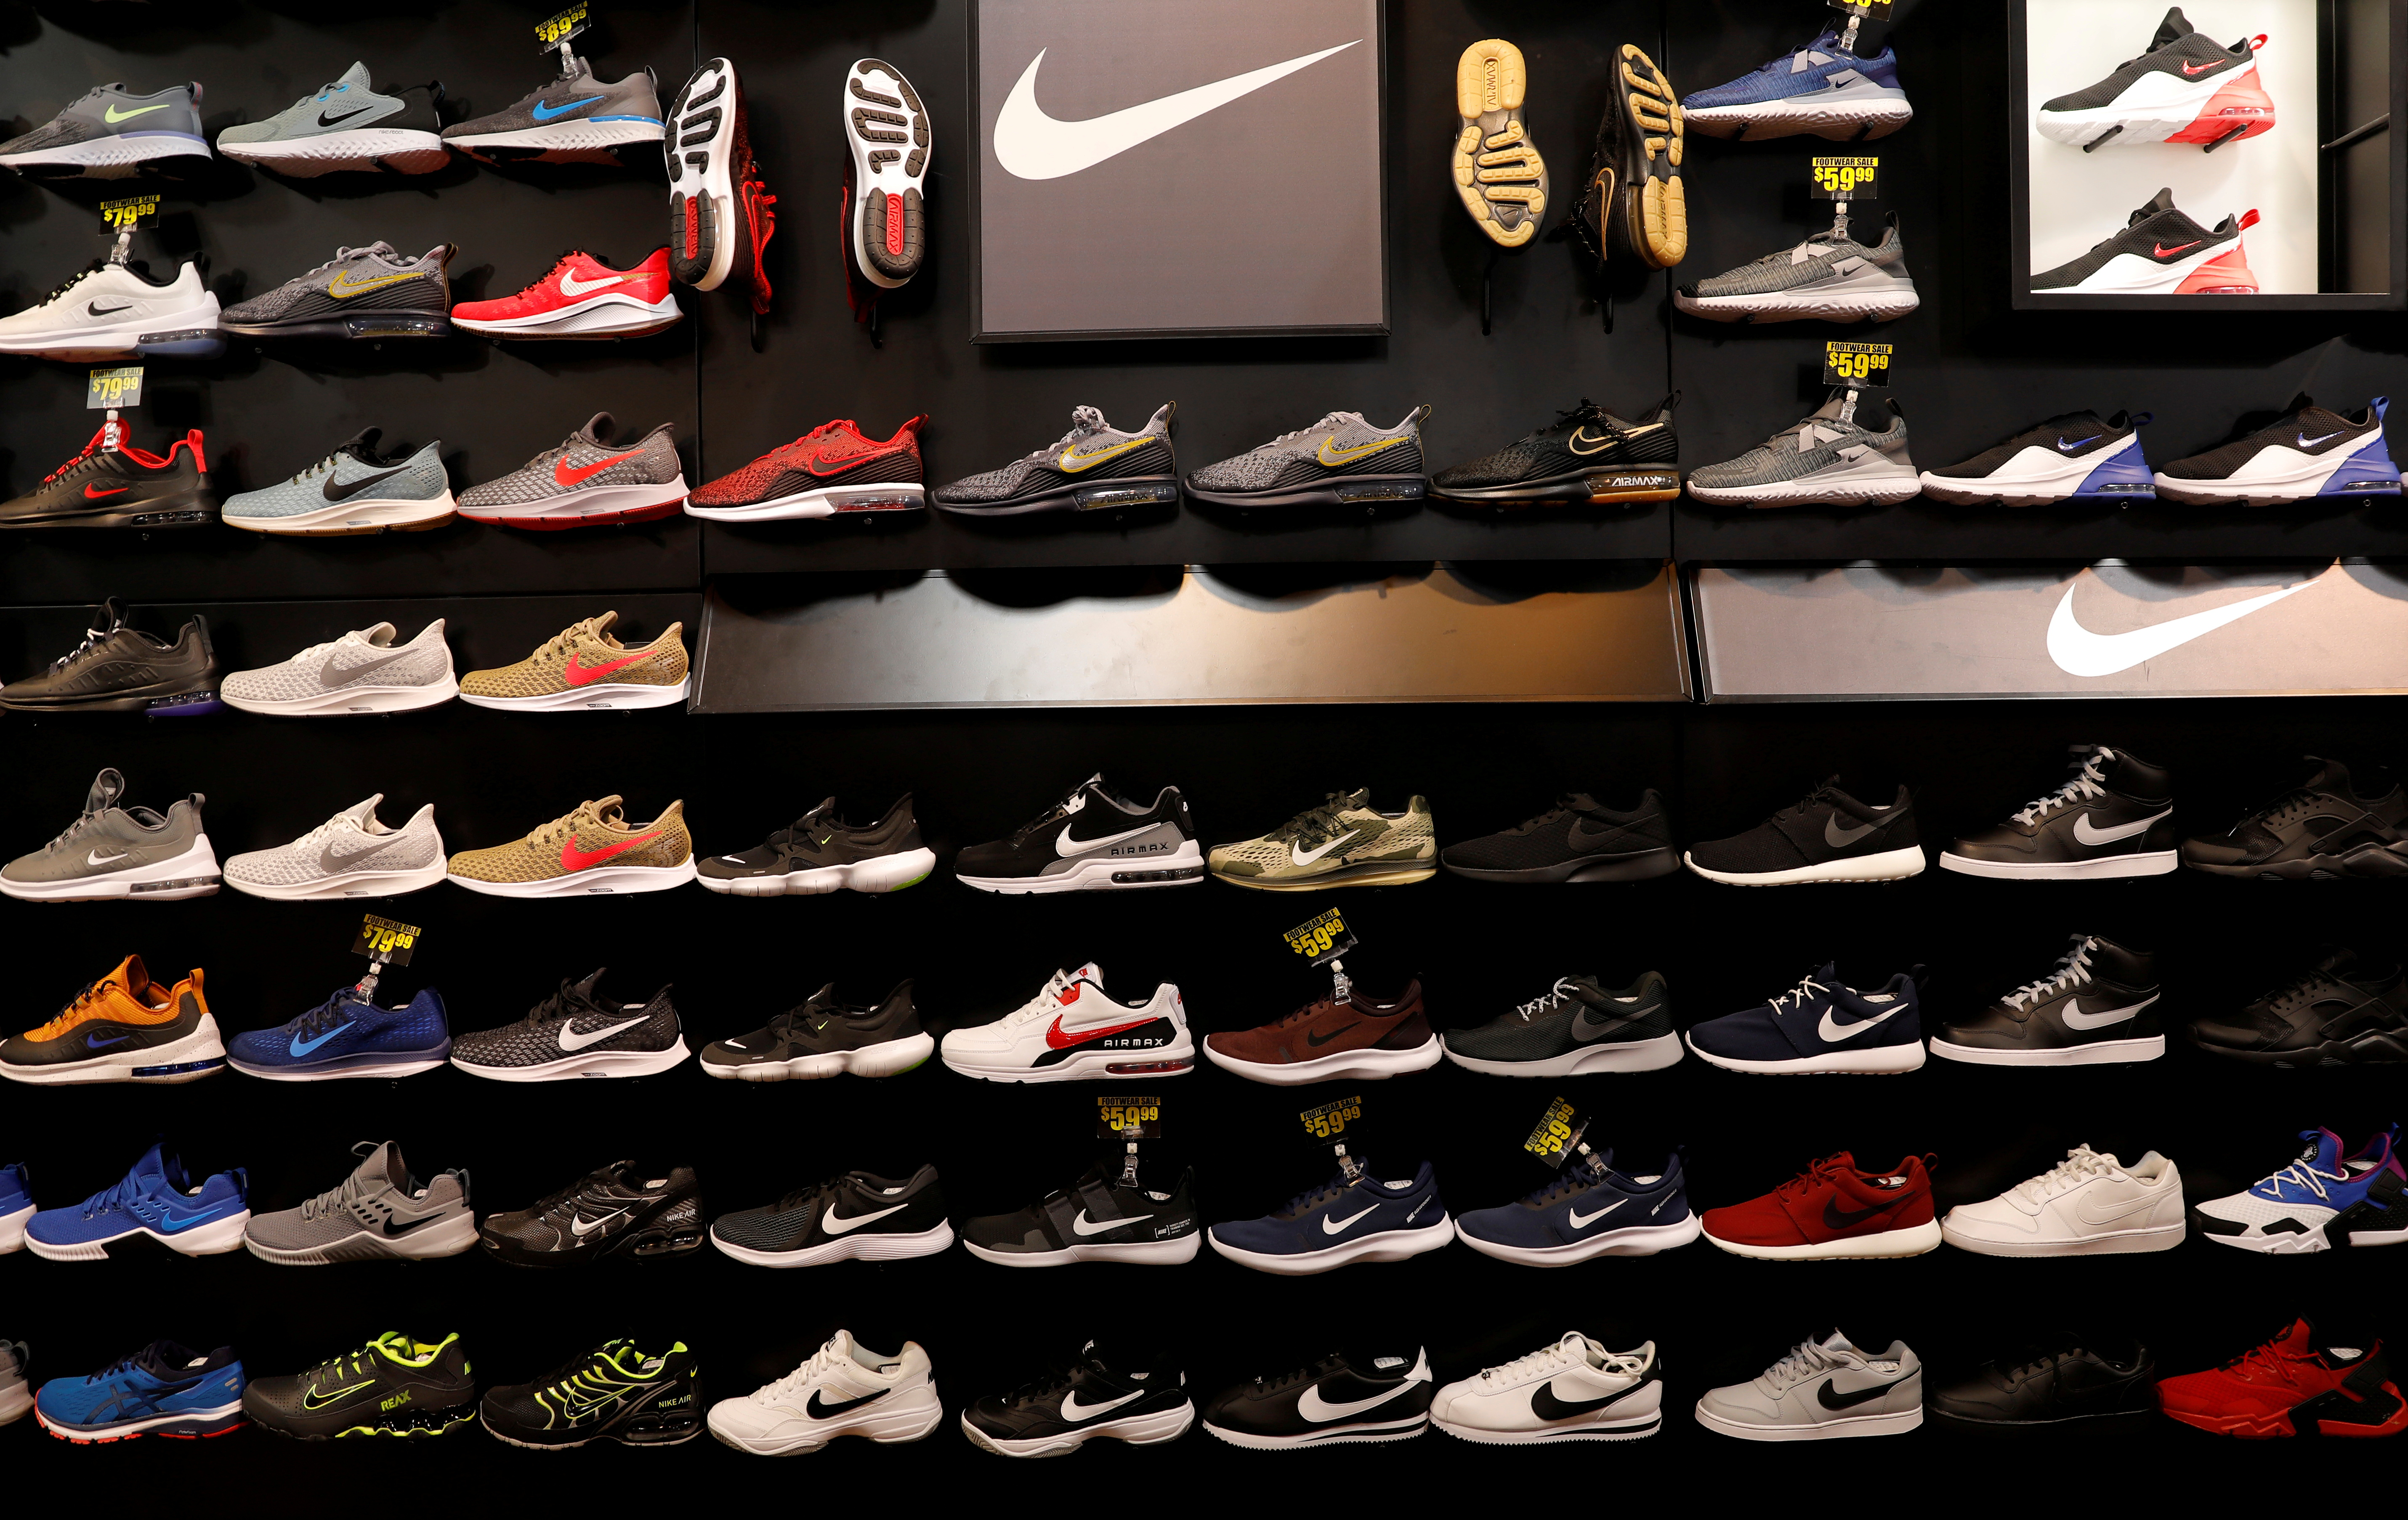 Nike shoes are seen displayed at a sporting goods store in New York.